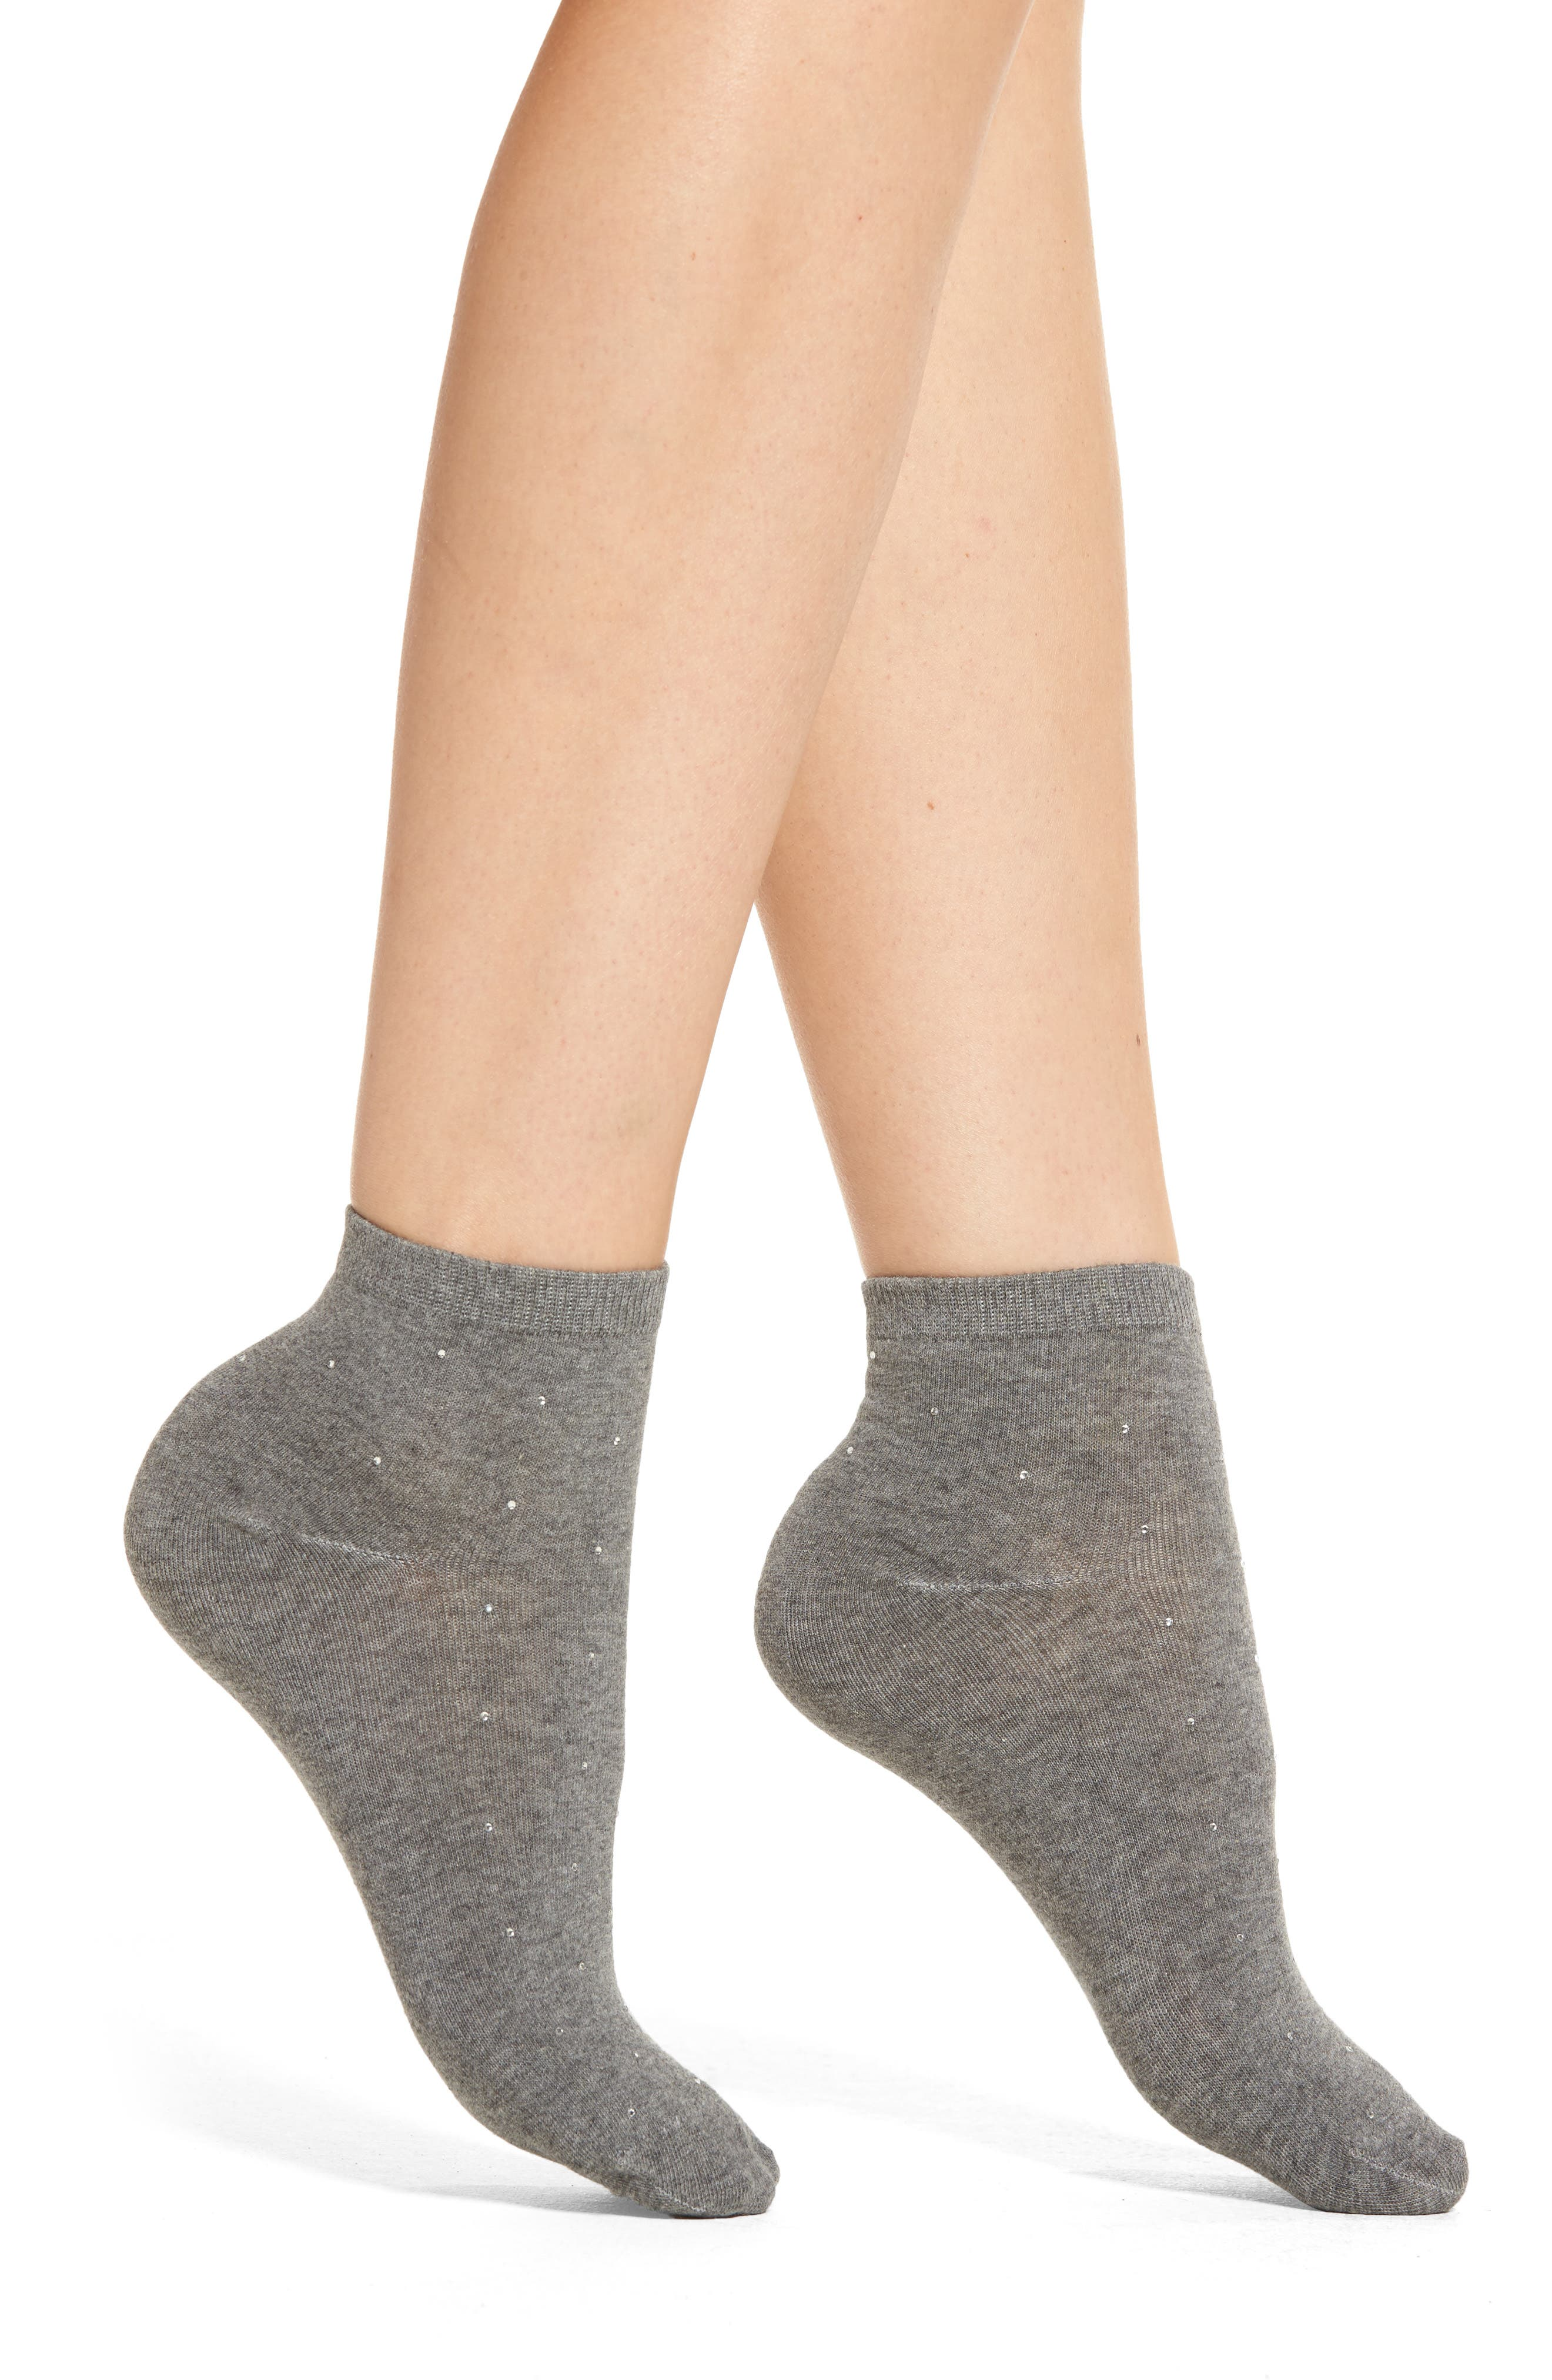 kate spade new york gem ankle socks (3 for $24)